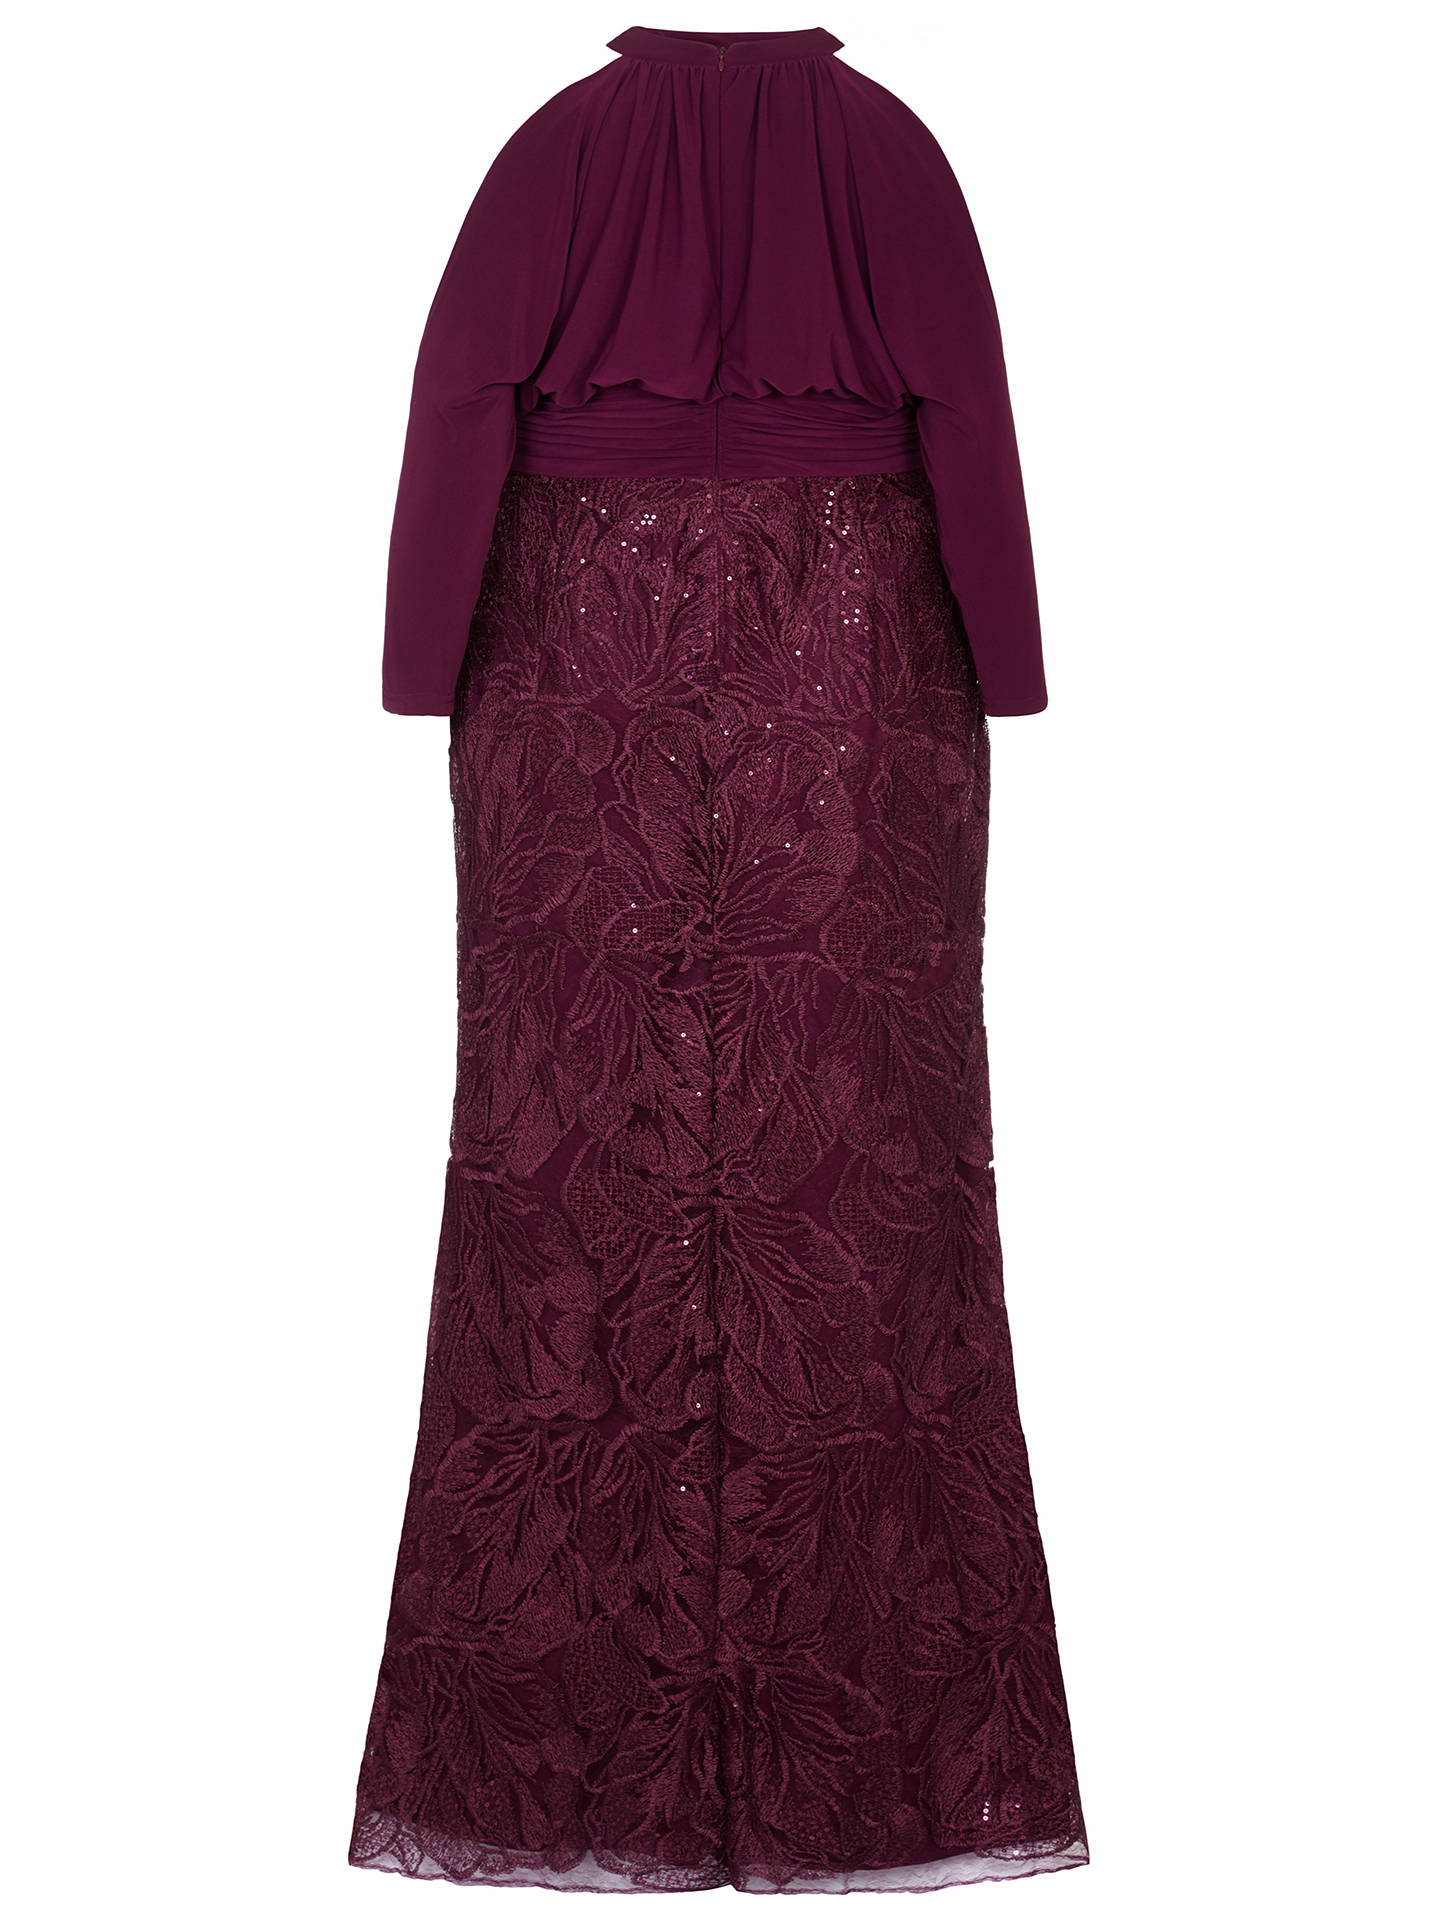 BuyAdrianna Papell Long Sequin Blouson Dress, Cabernet, 26 Online at johnlewis.com